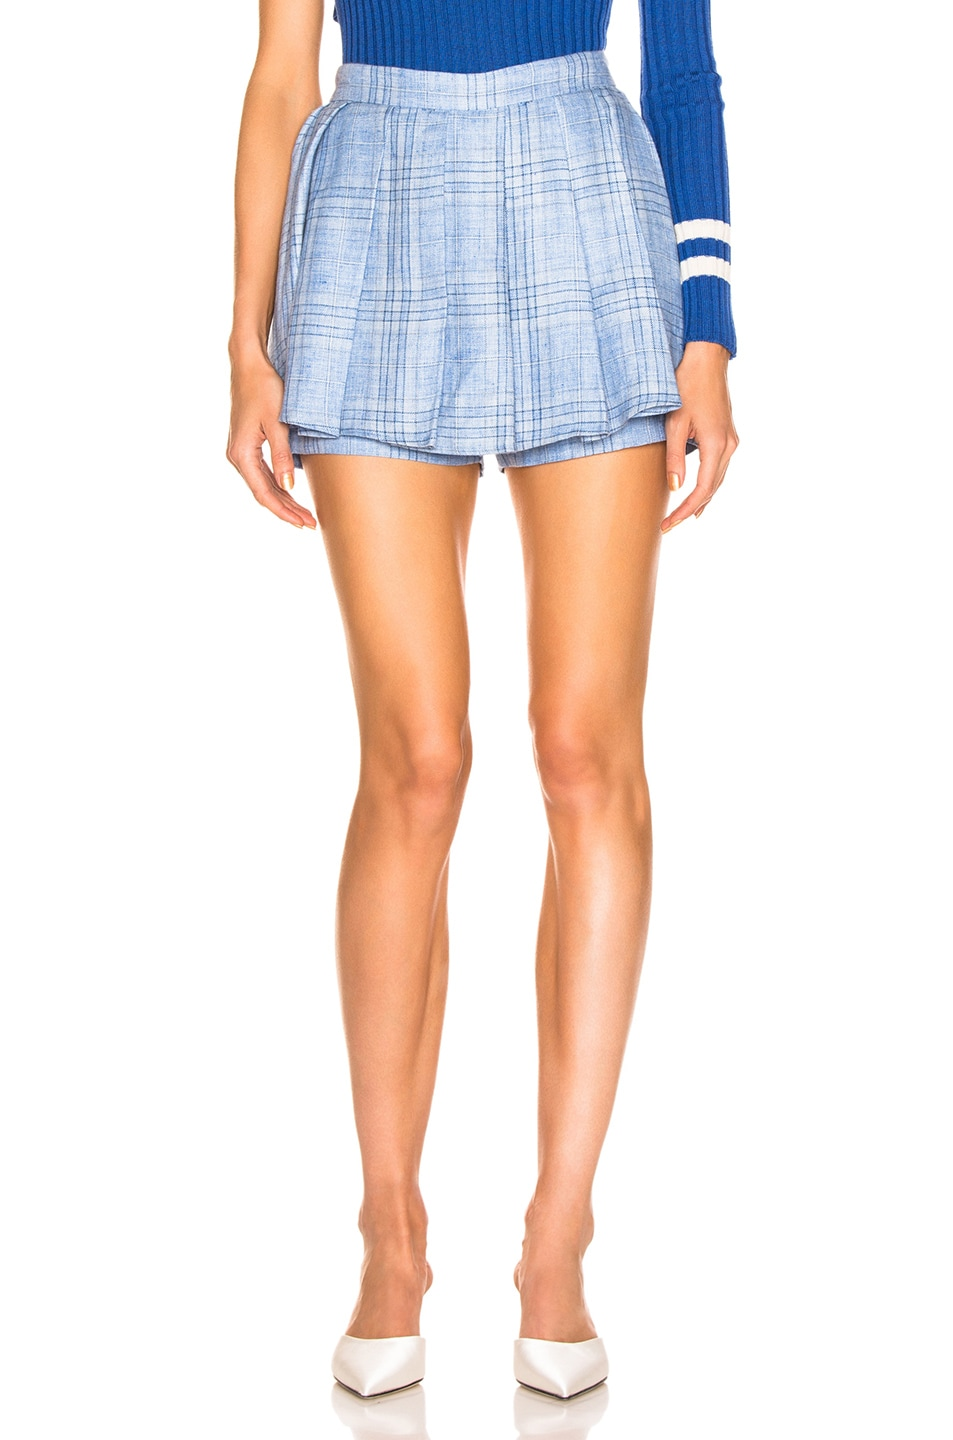 Image 1 of Maggie Marilyn Say You'll Never Let me Go Blue Skort in Baby Blue Check